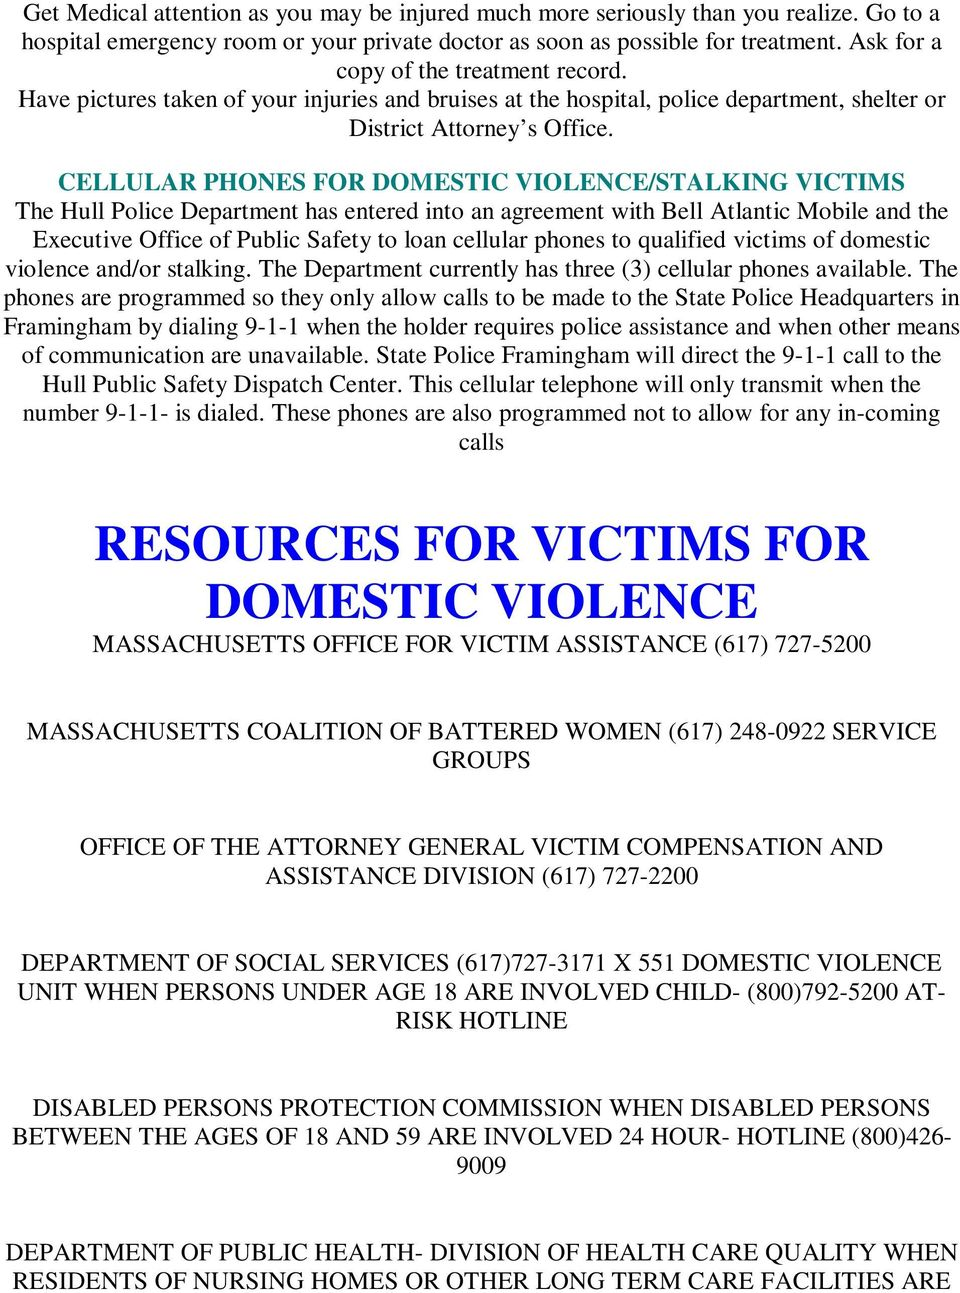 CELLULAR PHONES FOR DOMESTIC VIOLENCE/STALKING VICTIMS The Hull Police Department has entered into an agreement with Bell Atlantic Mobile and the Executive Office of Public Safety to loan cellular